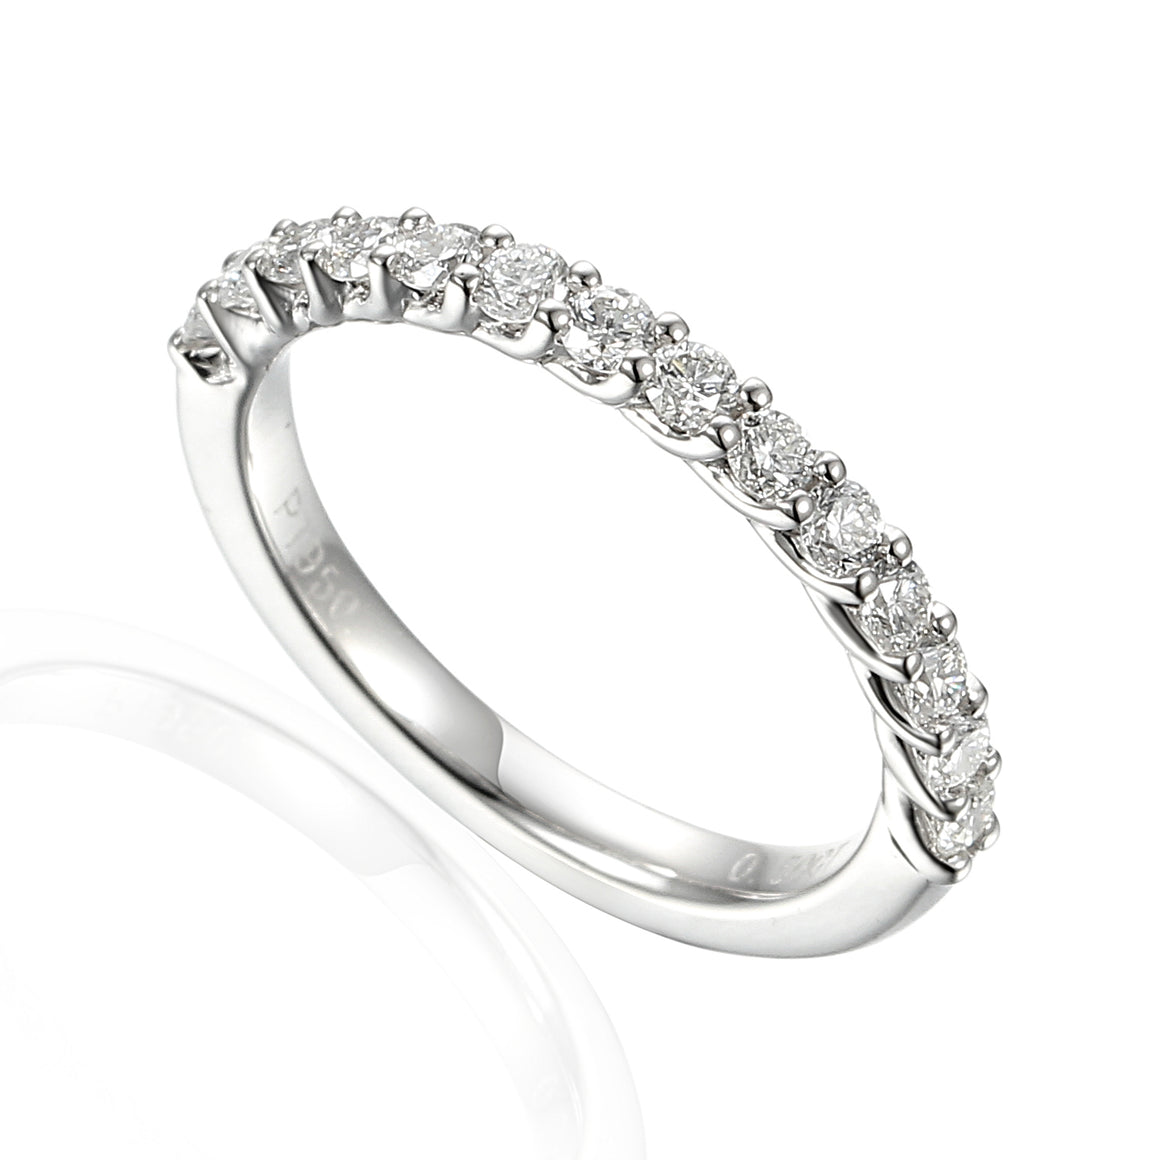 18ct White Gold Half Eternity Claw Set Ring